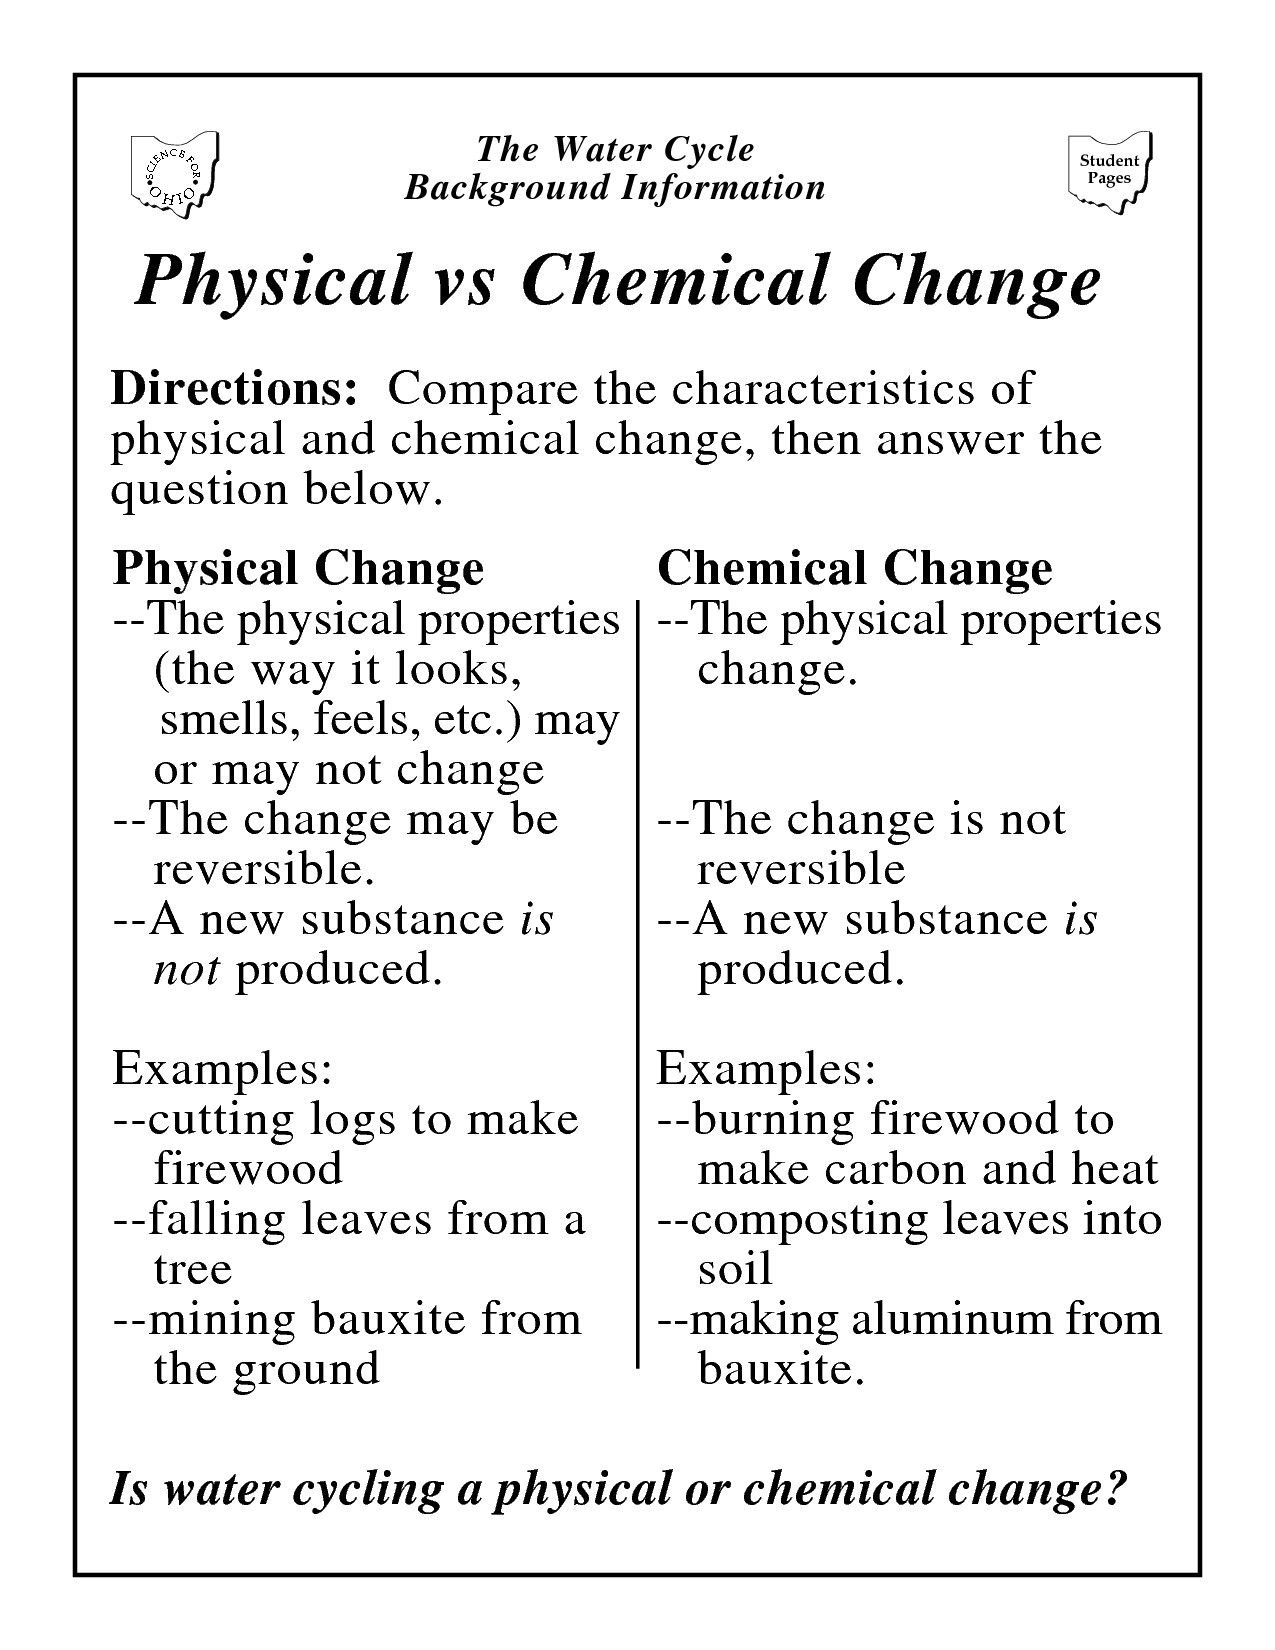 Chapter 2 Principles Of Ecology Worksheet Answers